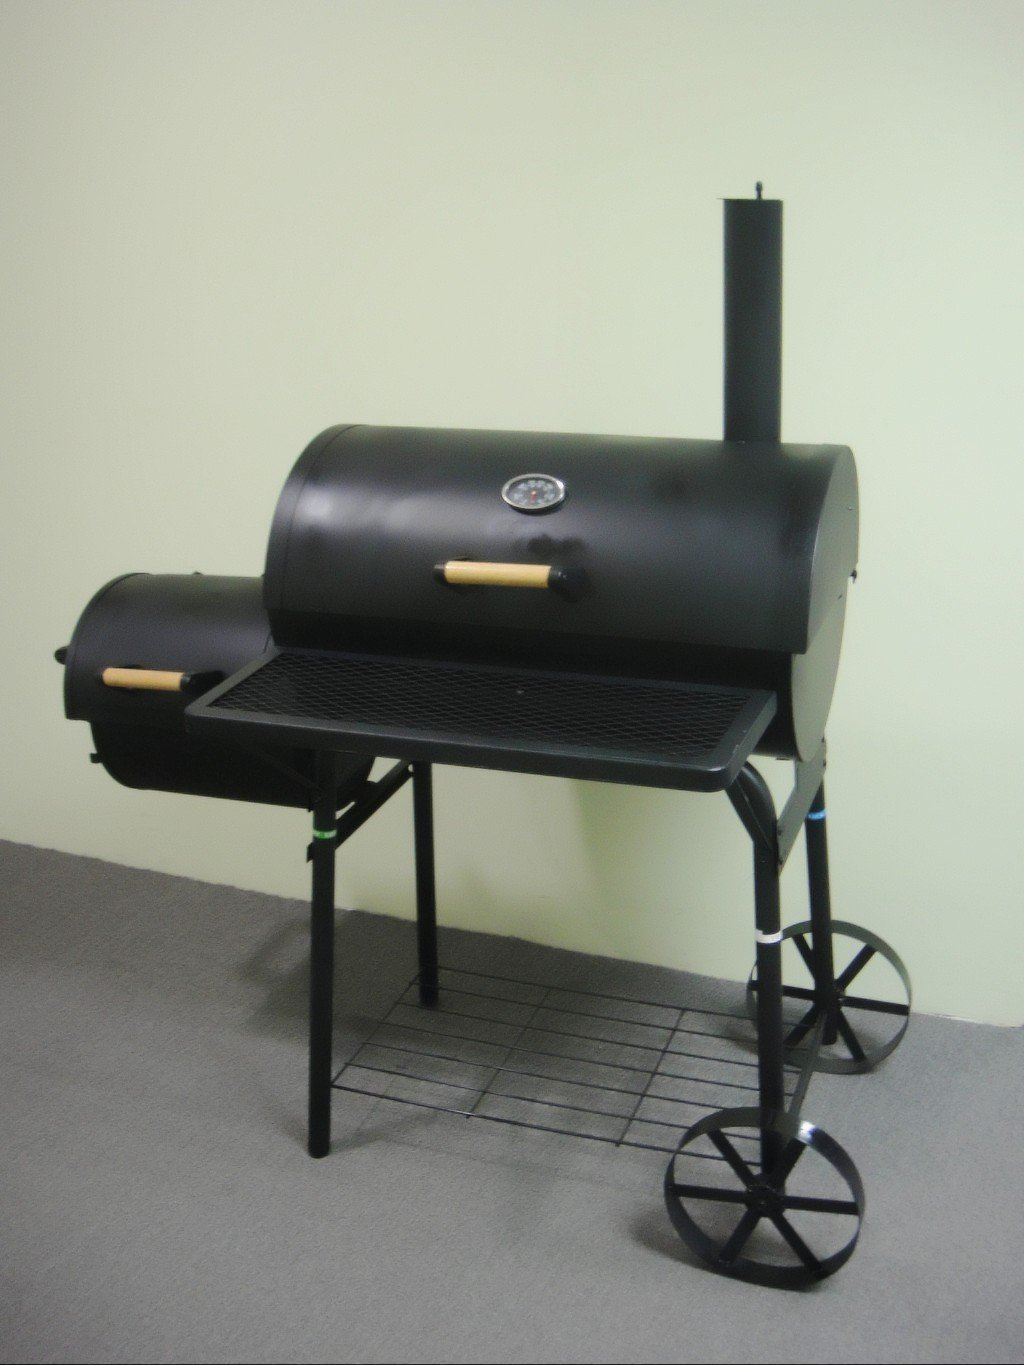 Smoker OGA032 - Barbacoa de carbón (aprox. 1, 5 mm, acero, 32 kg): Amazon.es: Jardín